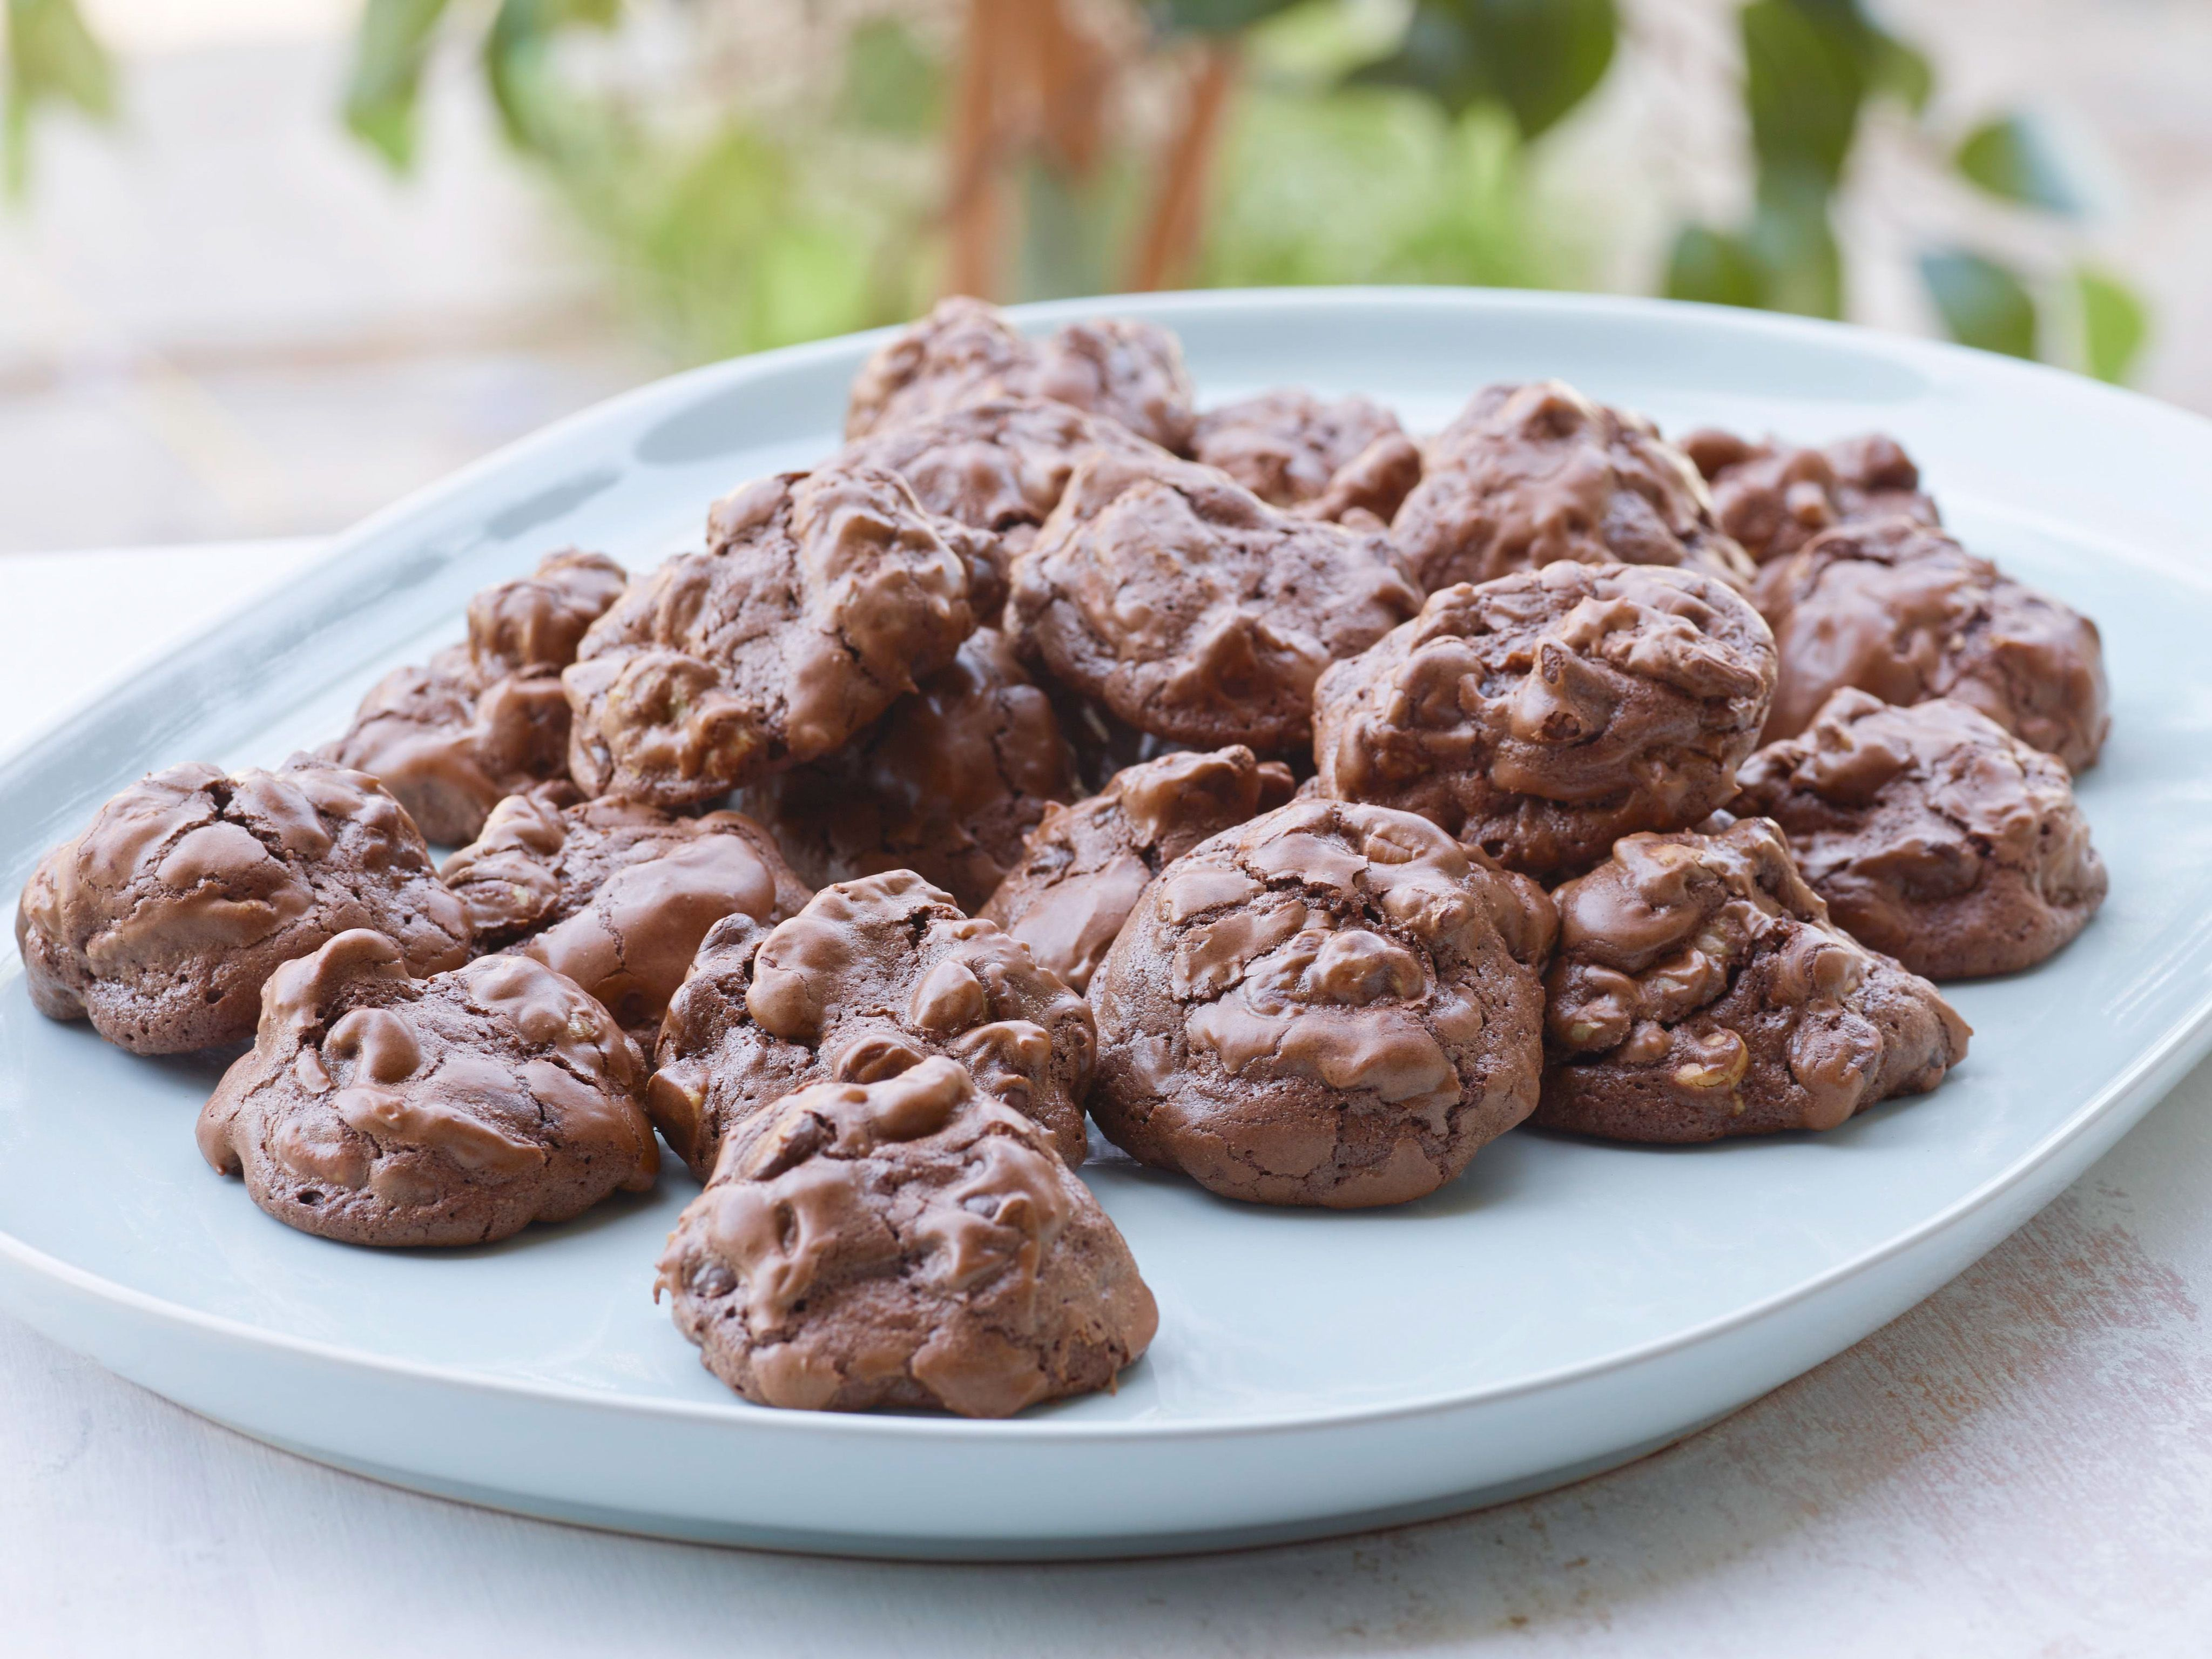 Chocolate peanut butter globs recipe ina garten garten and chocolate peanut butter globs recipe ina garten food network foodnetwork forumfinder Image collections